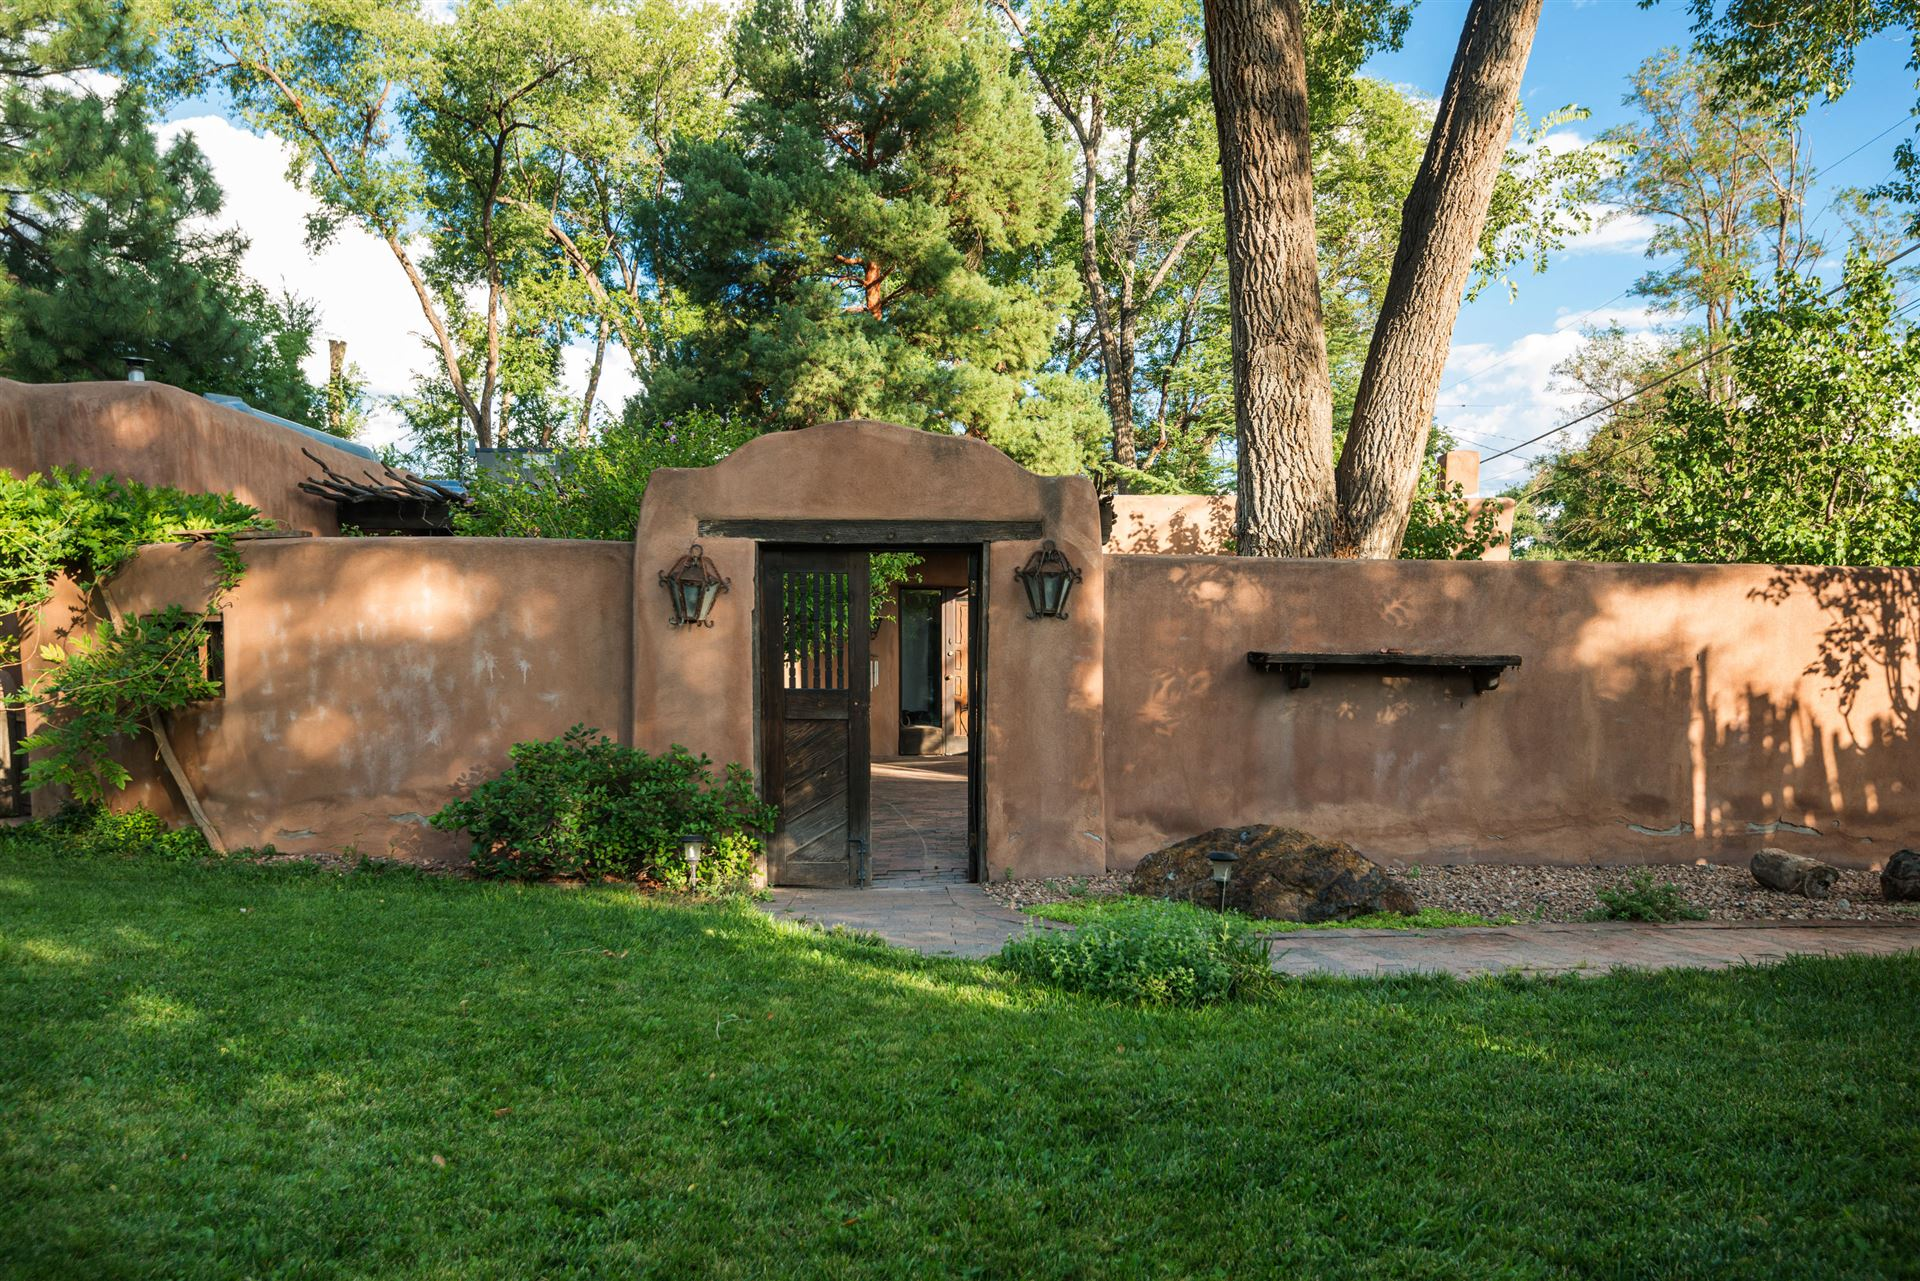 Photo of 8905 GUADALUPE Trail NW, Albuquerque, NM 87114 (MLS # 968494)